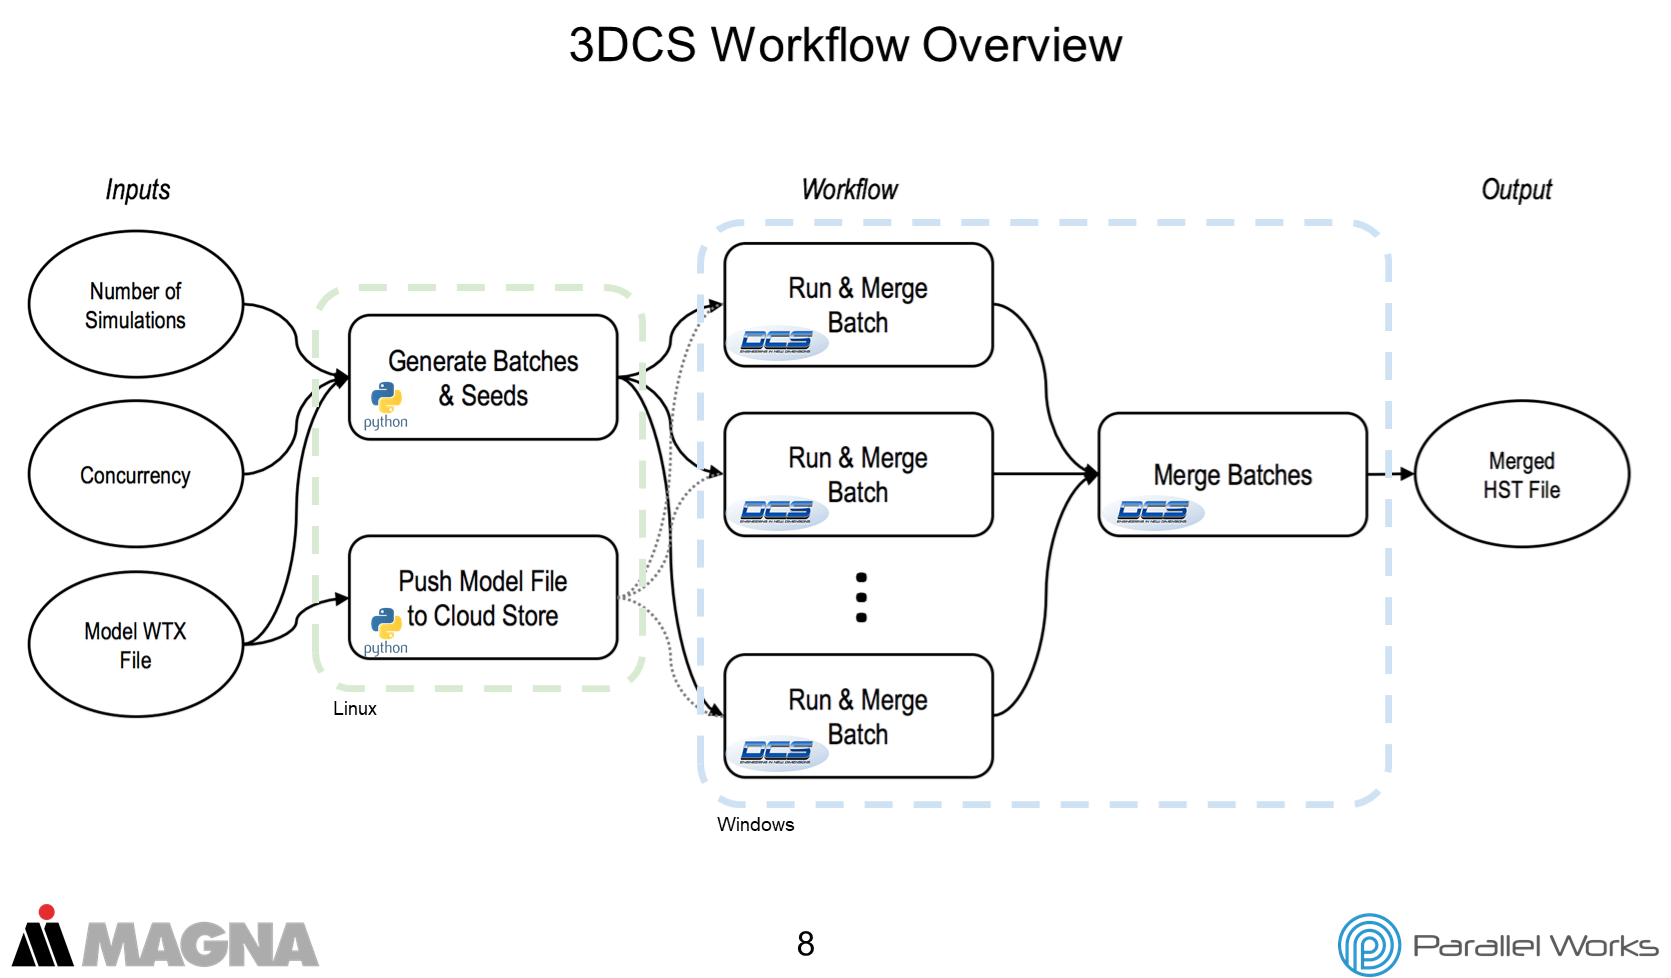 3DCS and Parallel Works Workflow